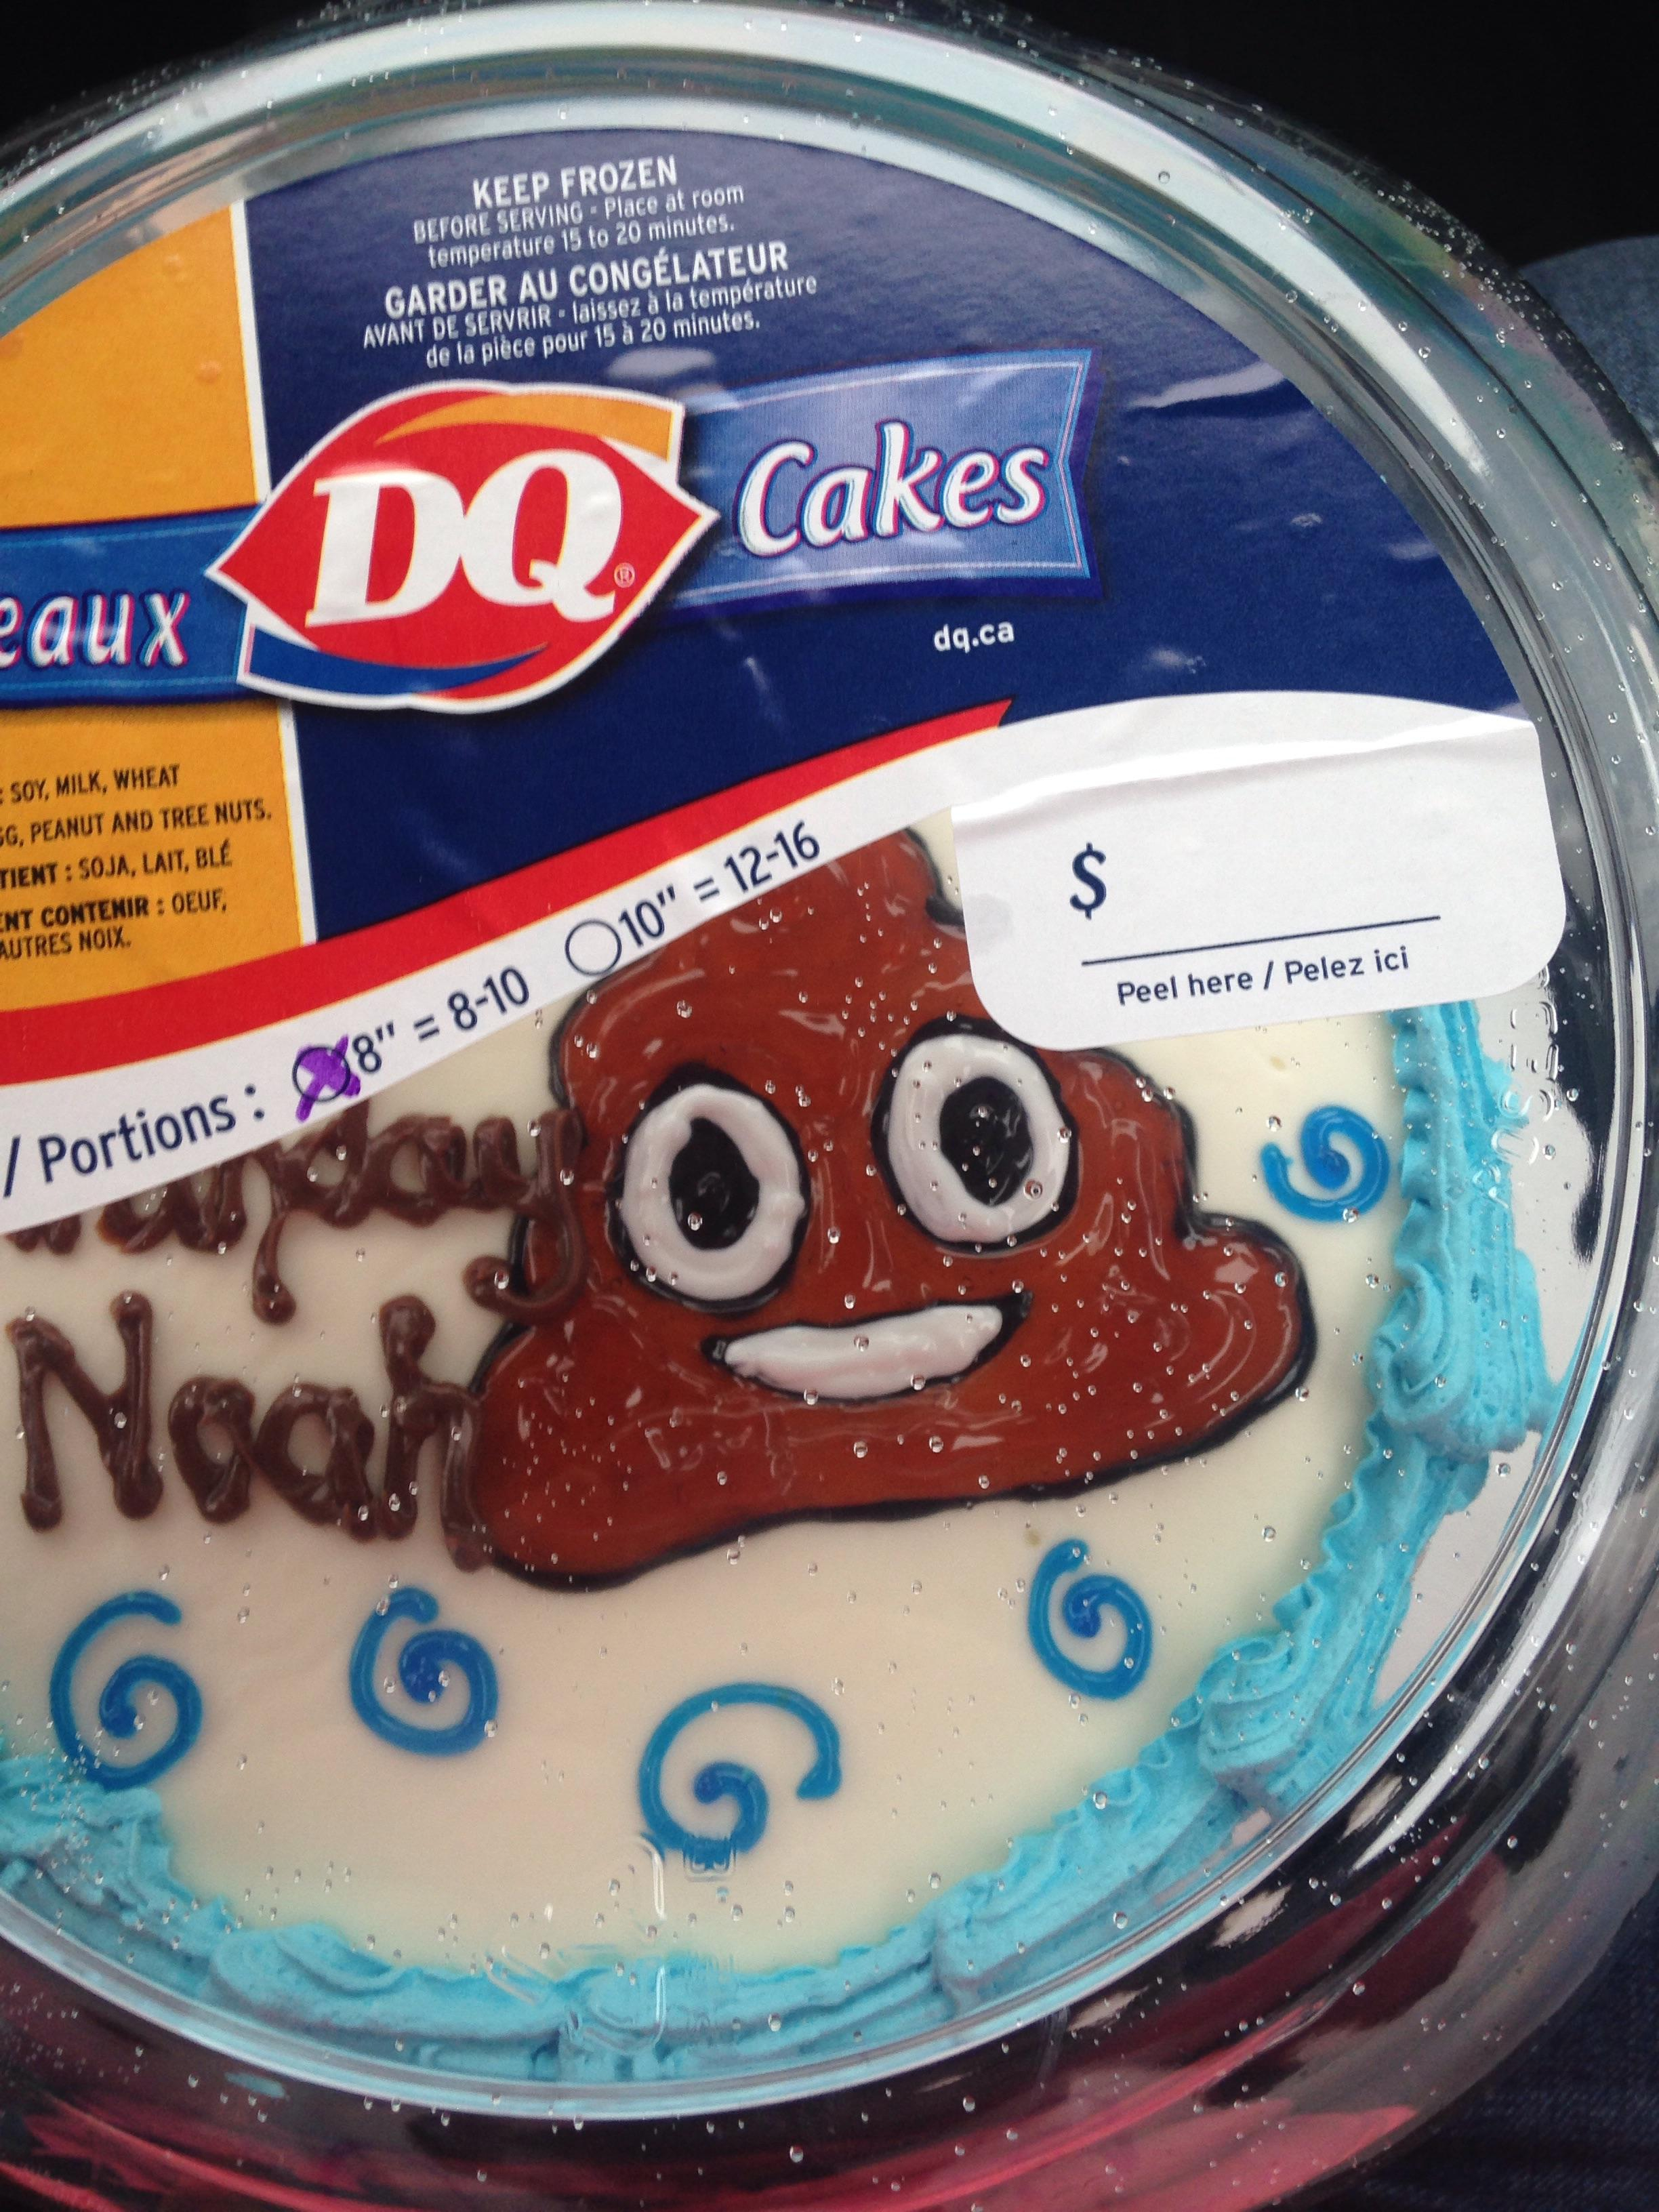 Dairy Queen Birthday Cakes We Got Dairy Queen To Put The Poop Emoji On His Birthday Cake Imgur